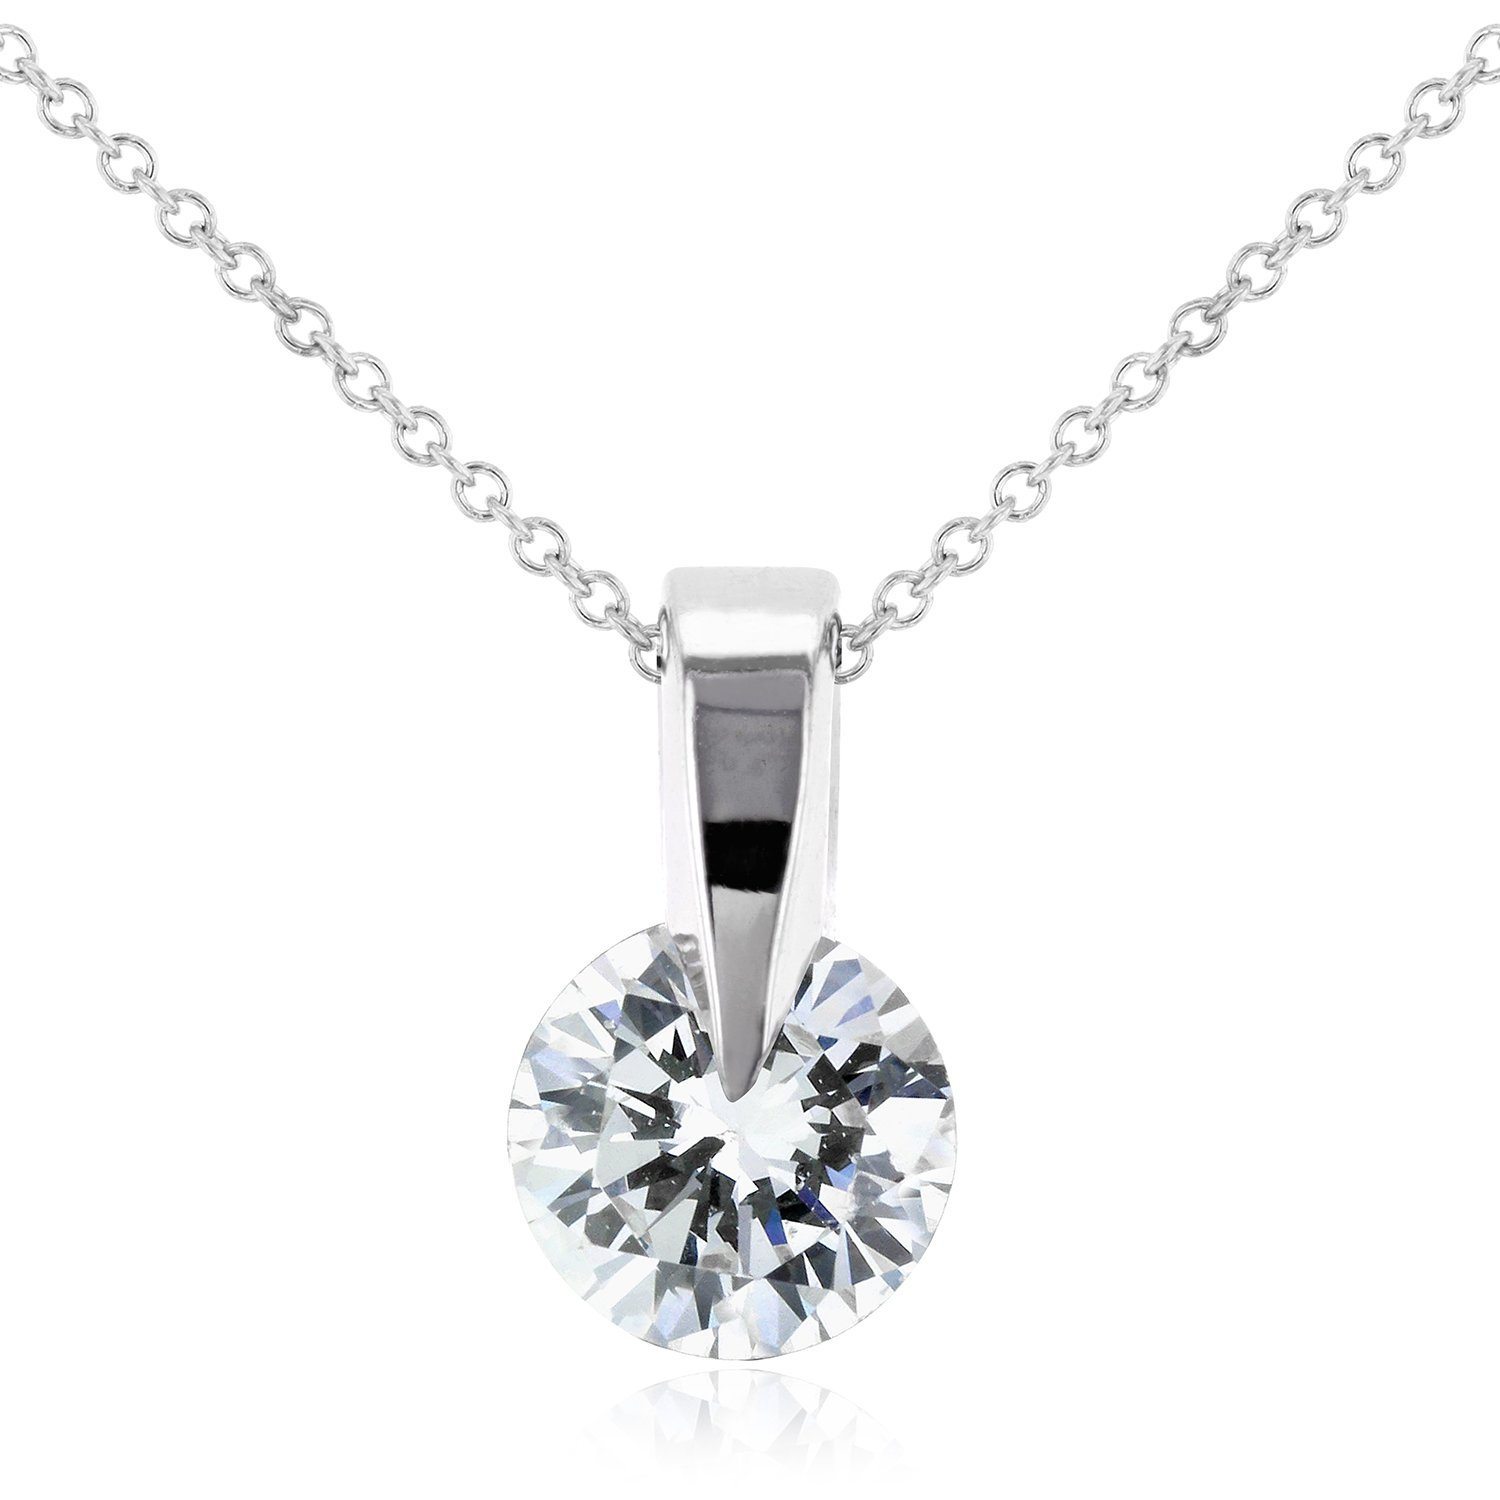 lewis solitaire rsp buyewa pdp pendant ewa main johnlewis john at white com diamond necklace online gold